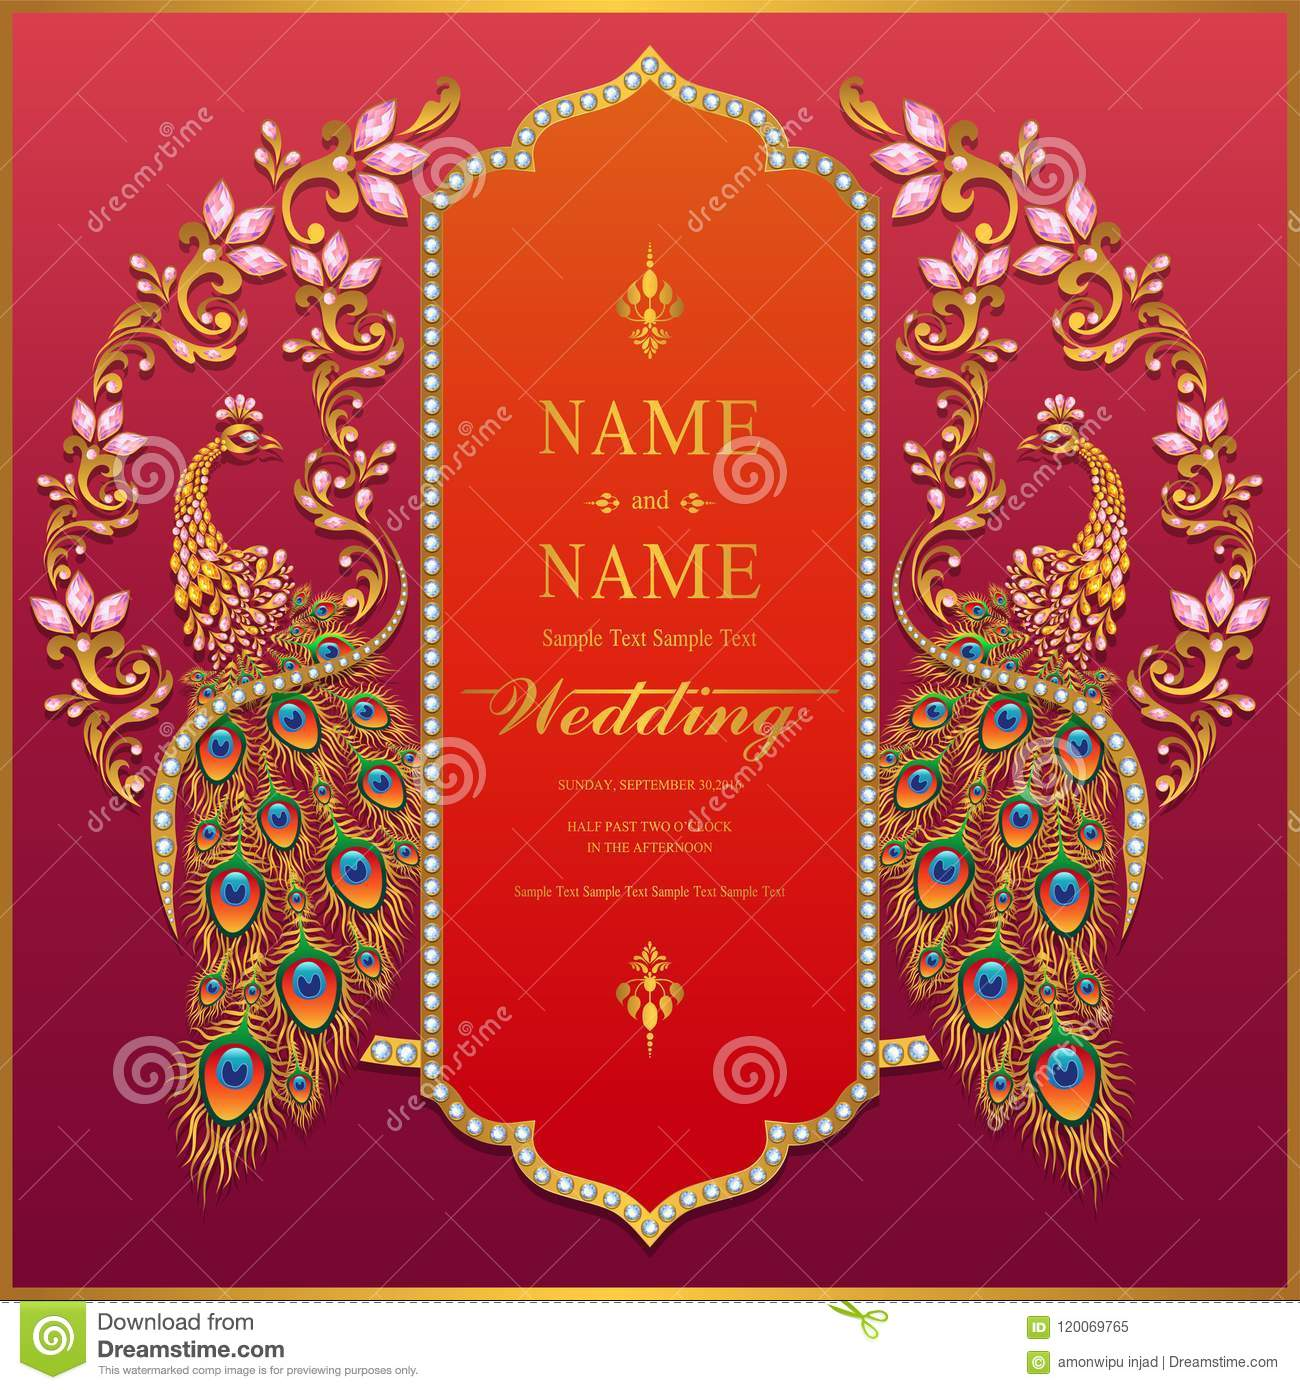 Wedding Invitation Card Templates Stock Vector Illustration Of Dubai Backdrop 120069765